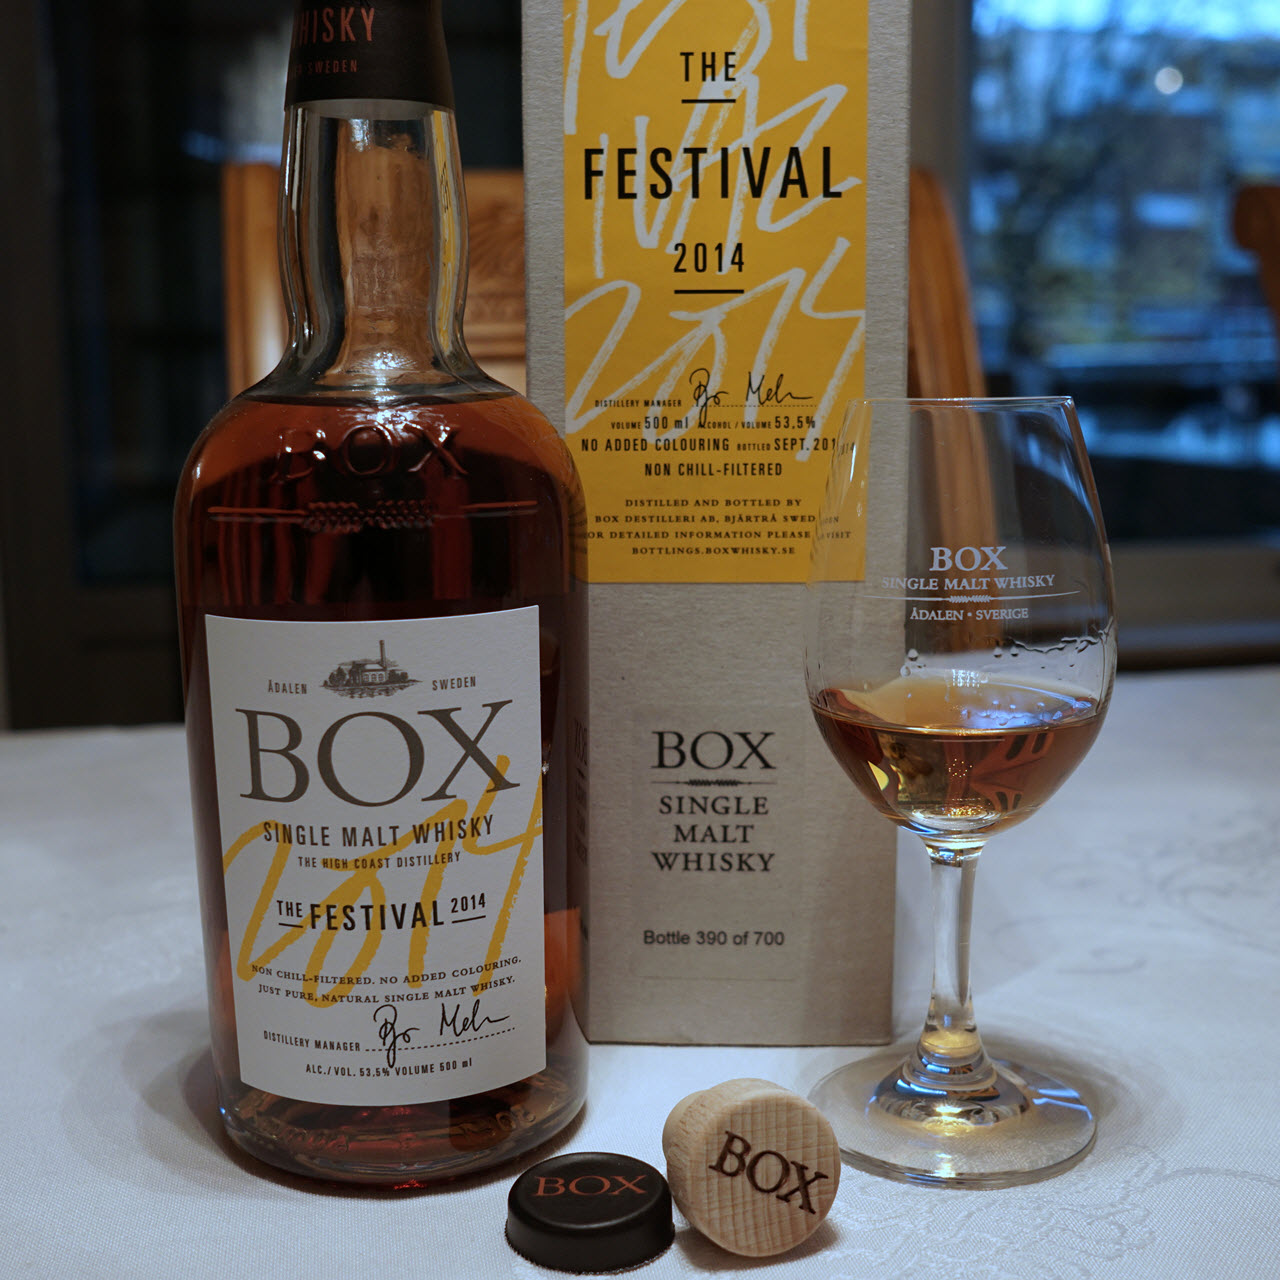 Nordic Whisky #17 - Box Whisky The Festival 2014